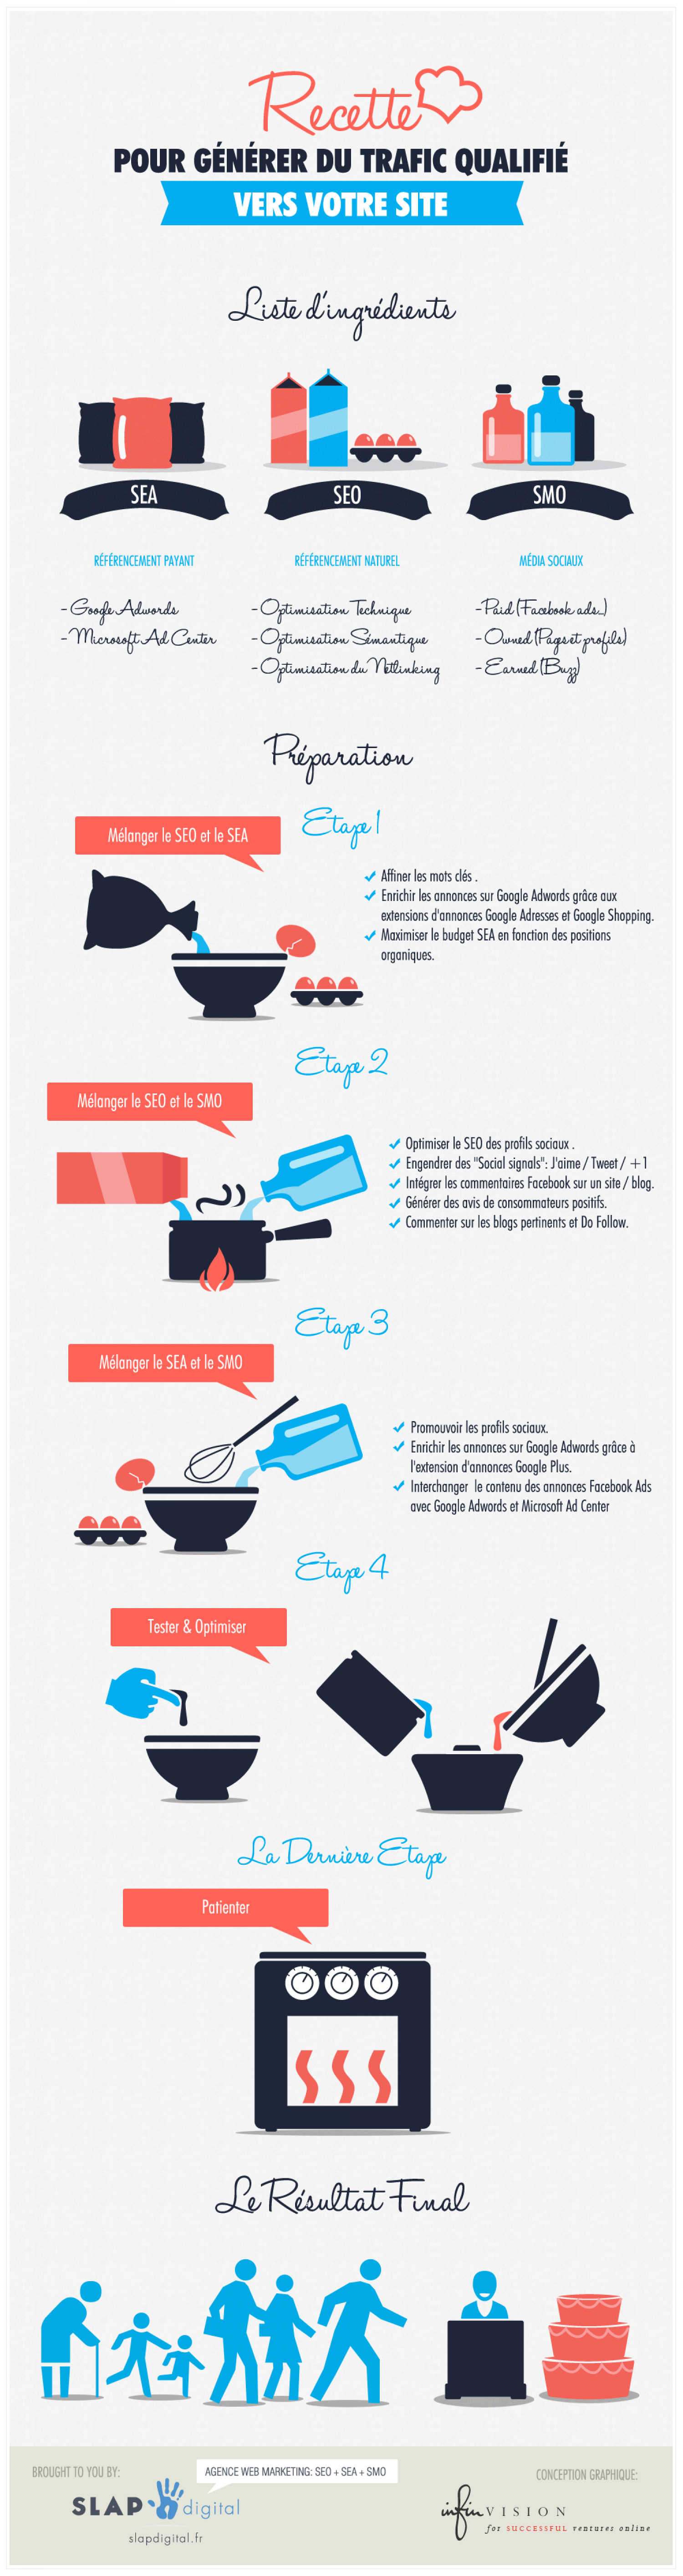 How to generate qualified traffic into your website Infographic